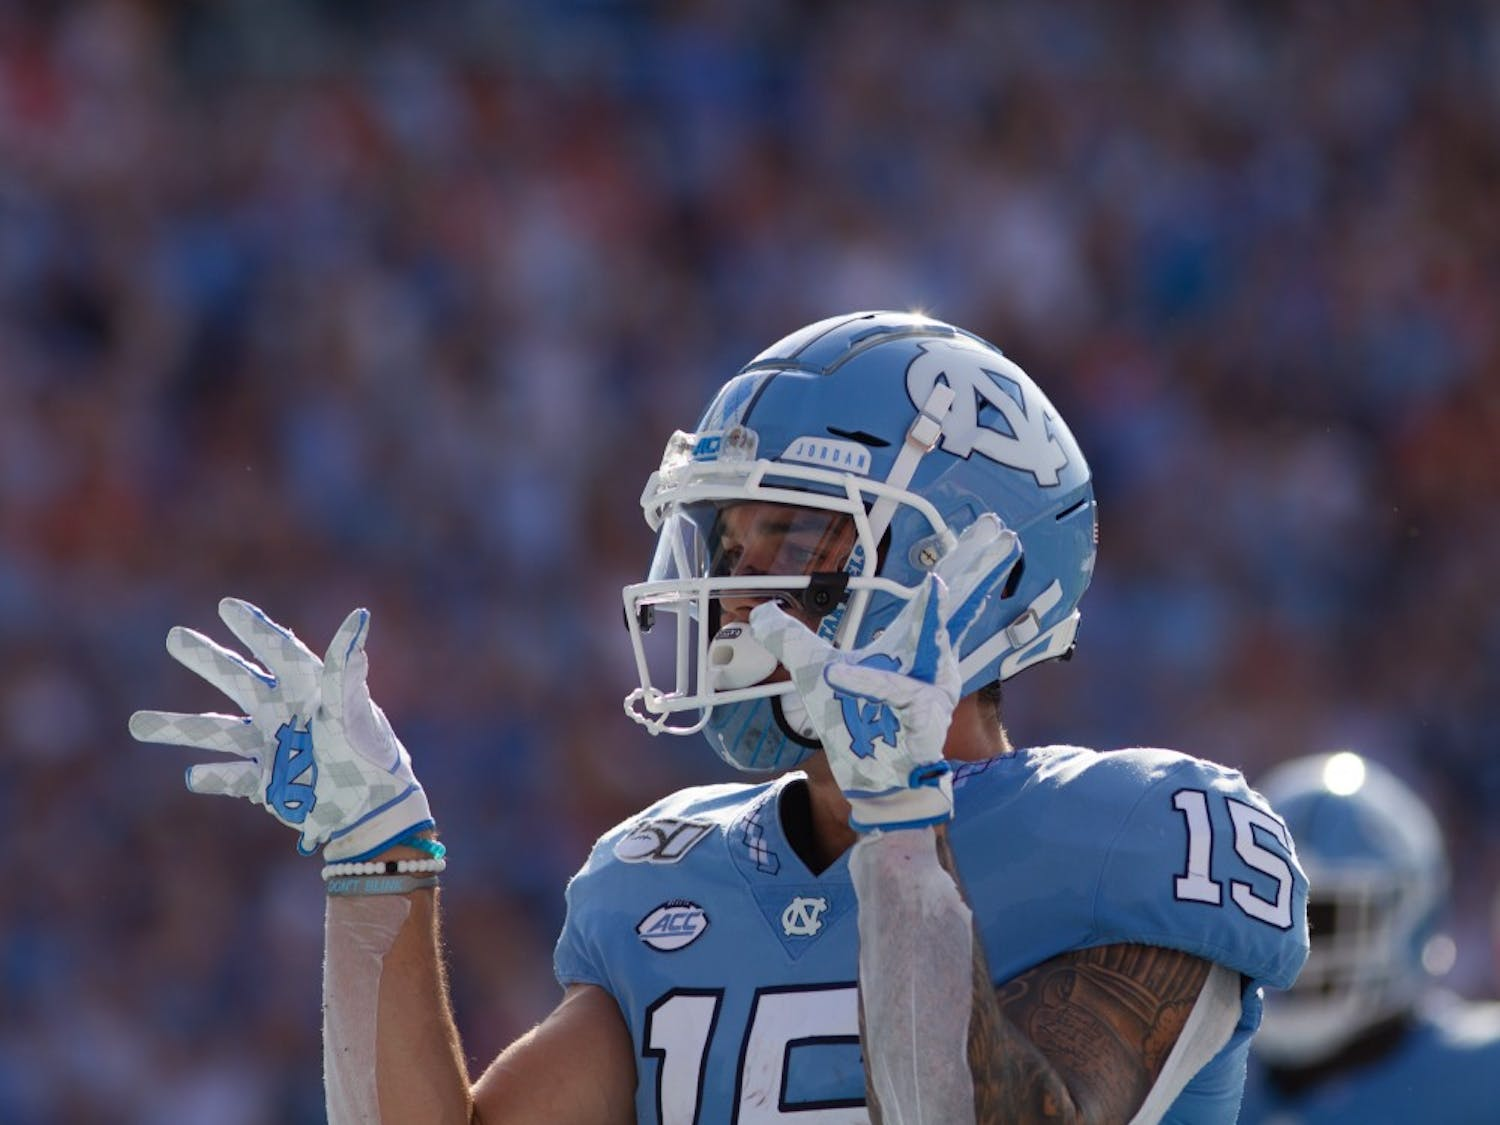 UNC wide receiver Beau Corrales (15) celebrates his touchdown reception during the football game against Clemson on Saturday, Sept. 28th, 2019 at Kenan Memorial Stadium. UNC lost to Clemson 21-20.